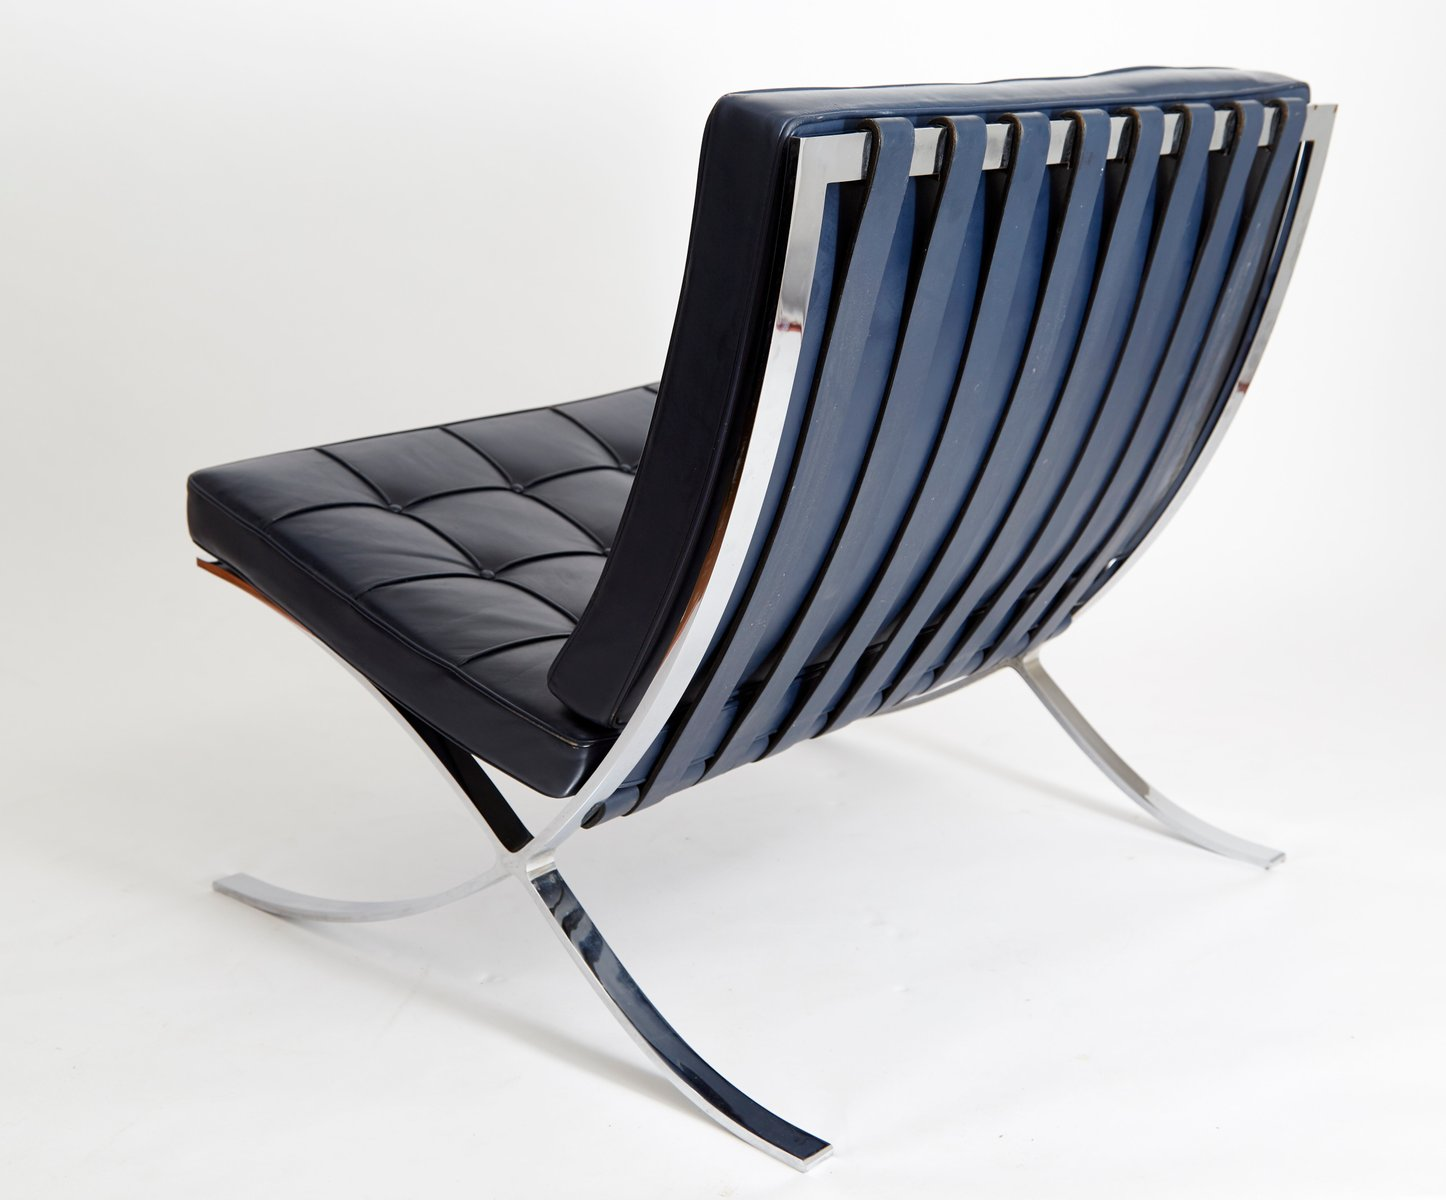 Vintage MR90 Barcelona Chair By Ludwig Mies Van Der Rohe For Knoll  International